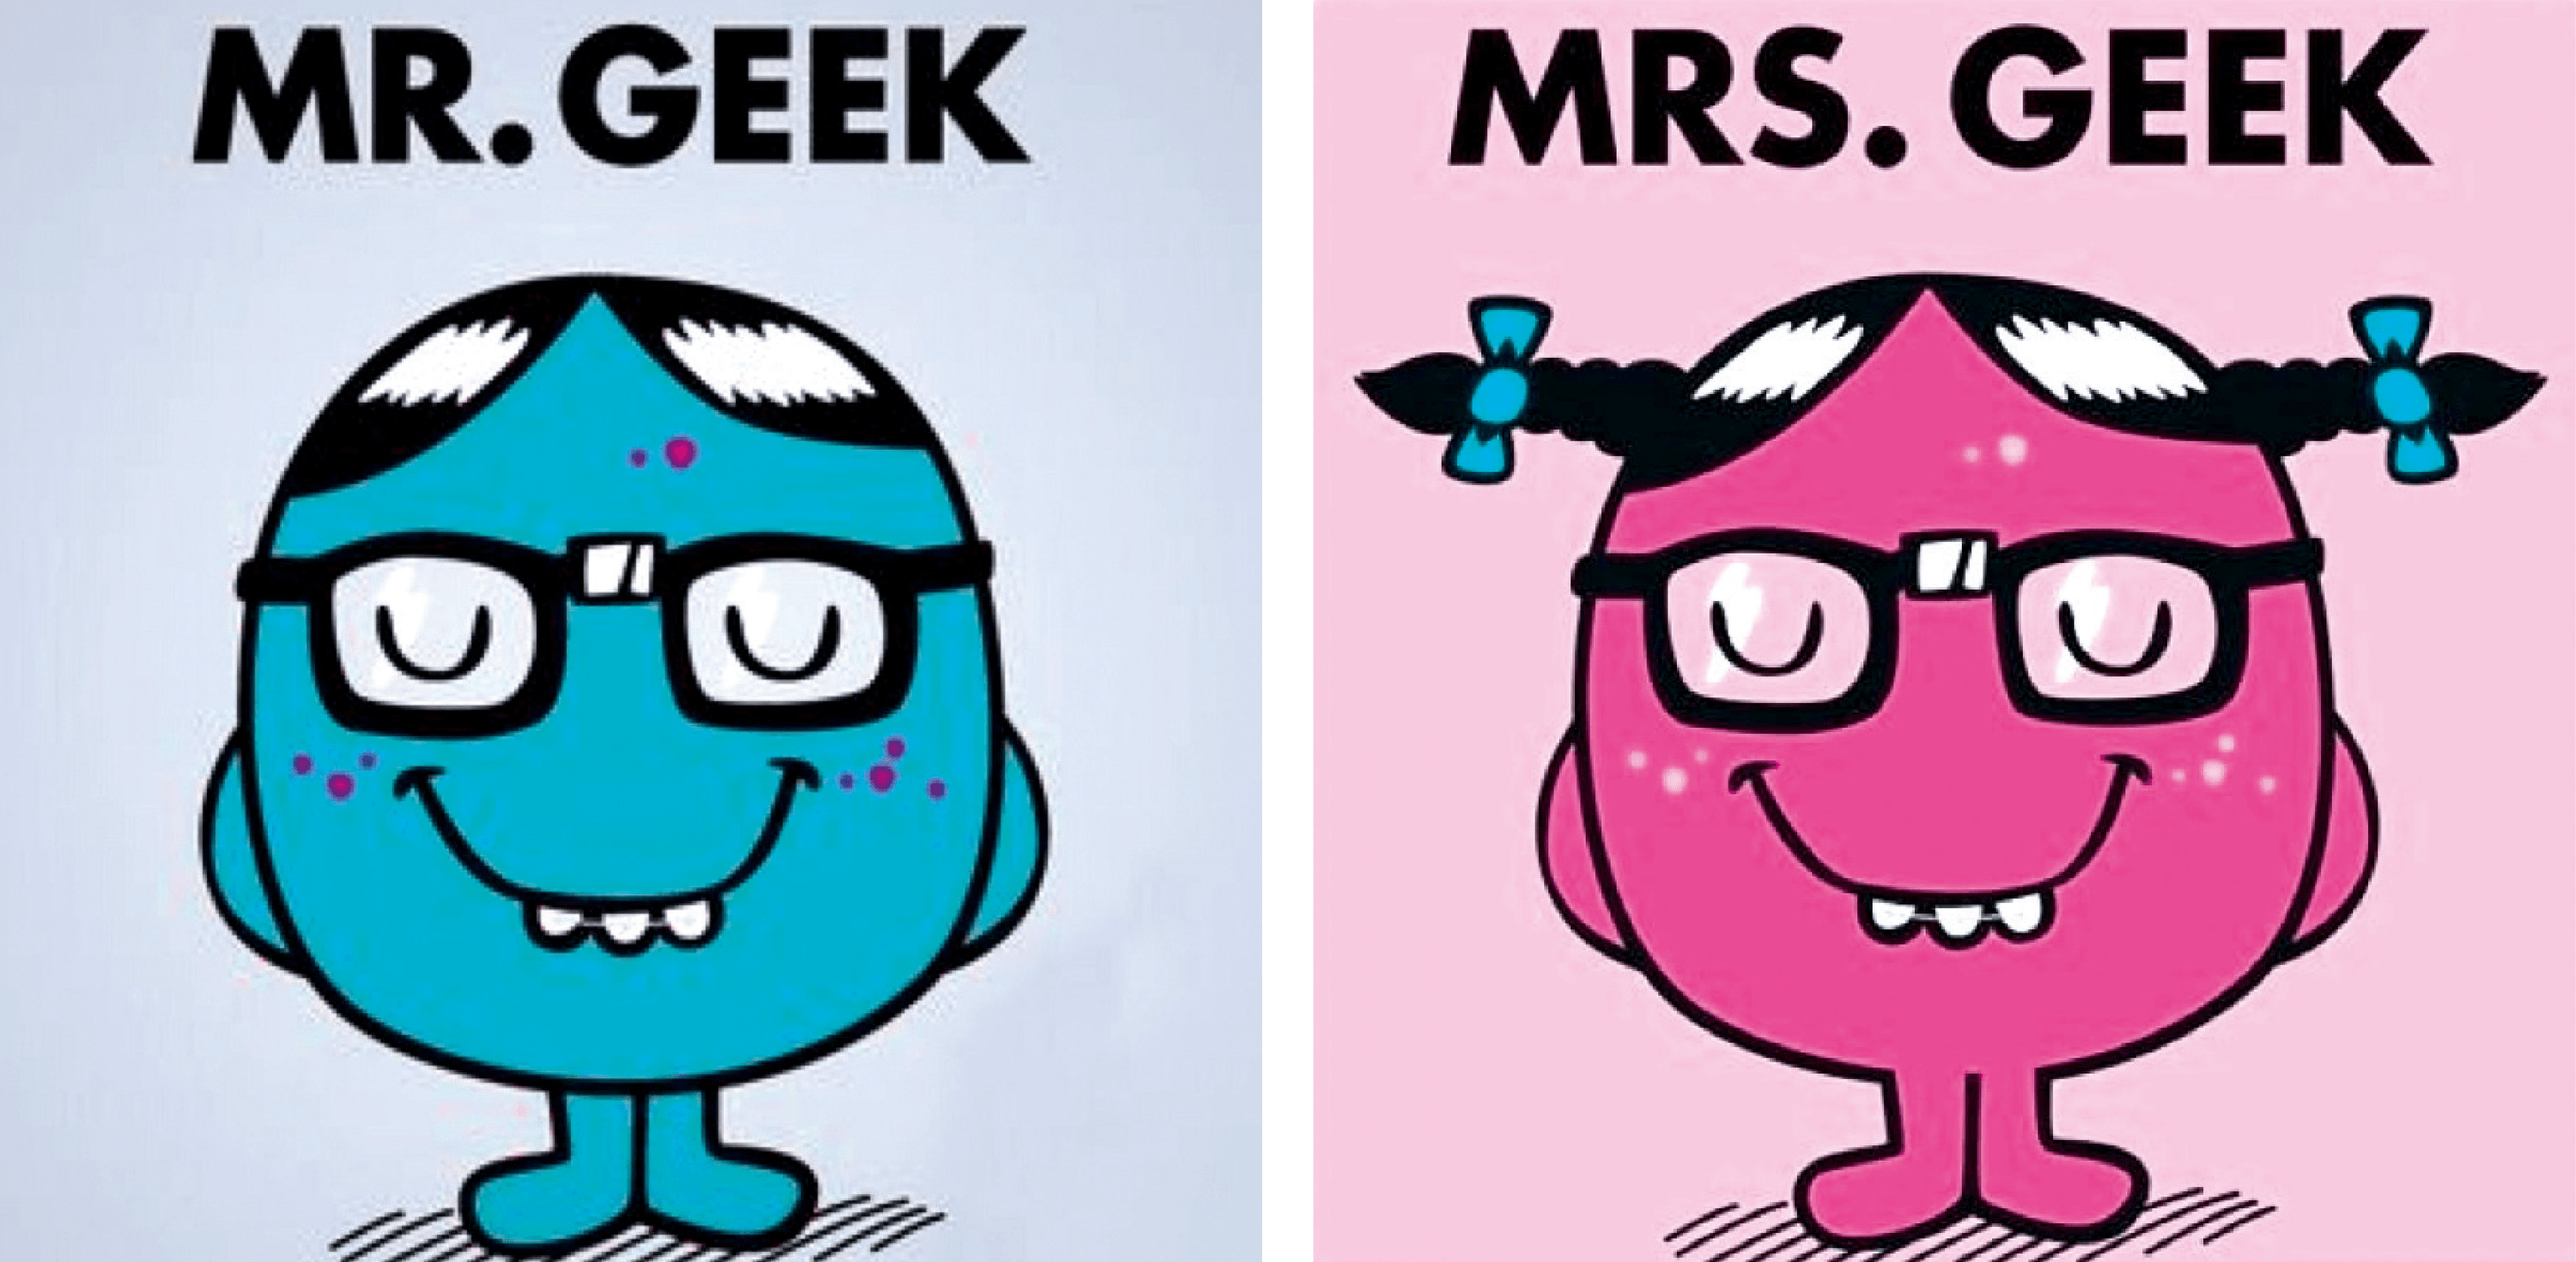 Mr. Geek & Mrs. Geek